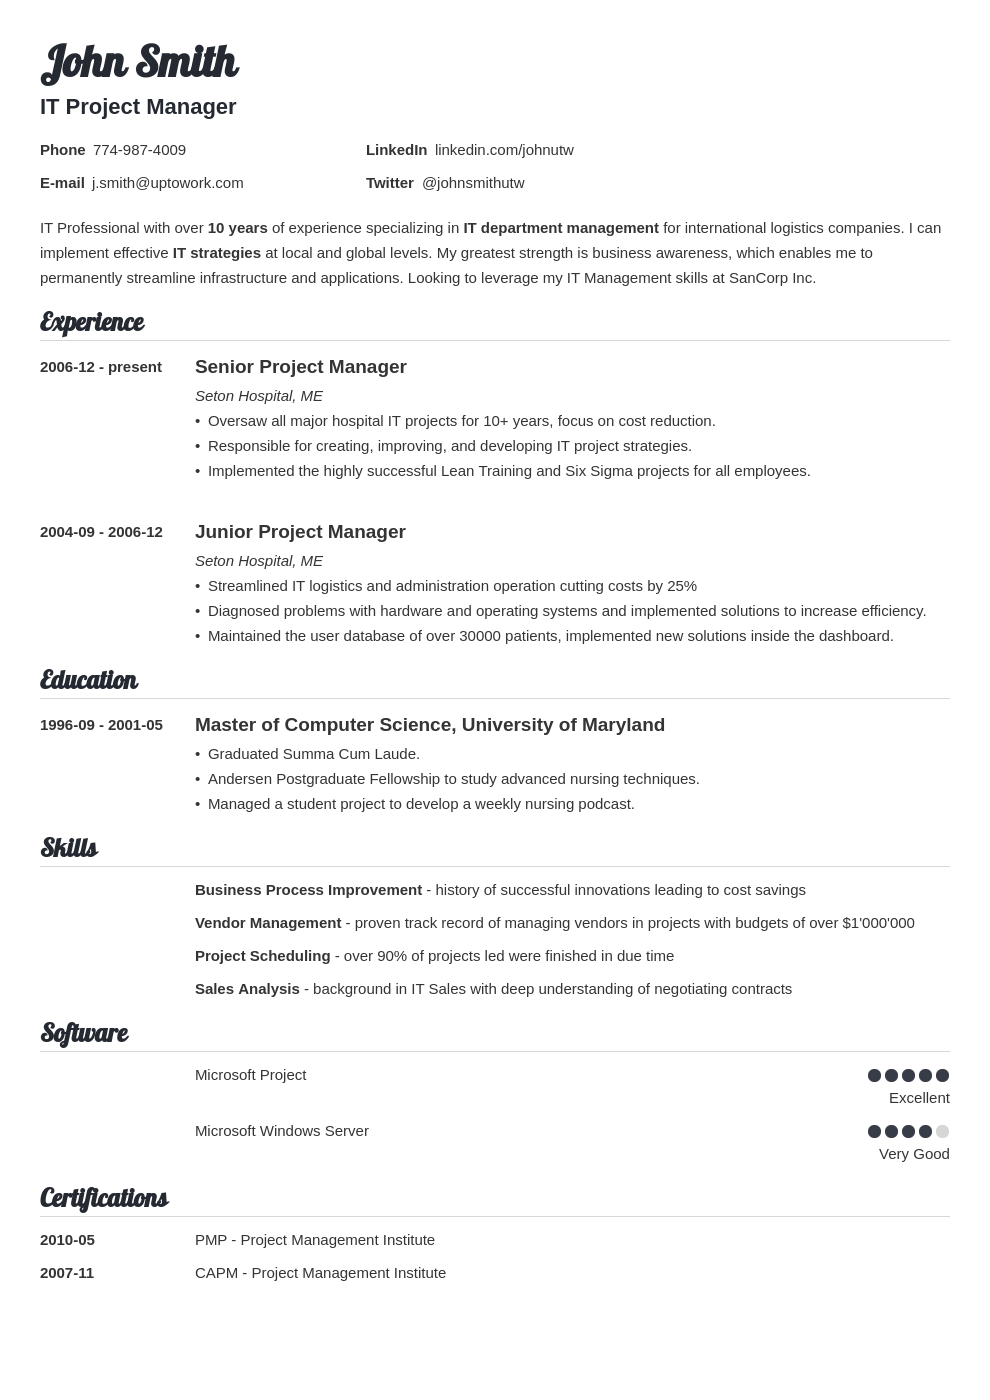 Professional Resume Template Valera | Resume templates ...